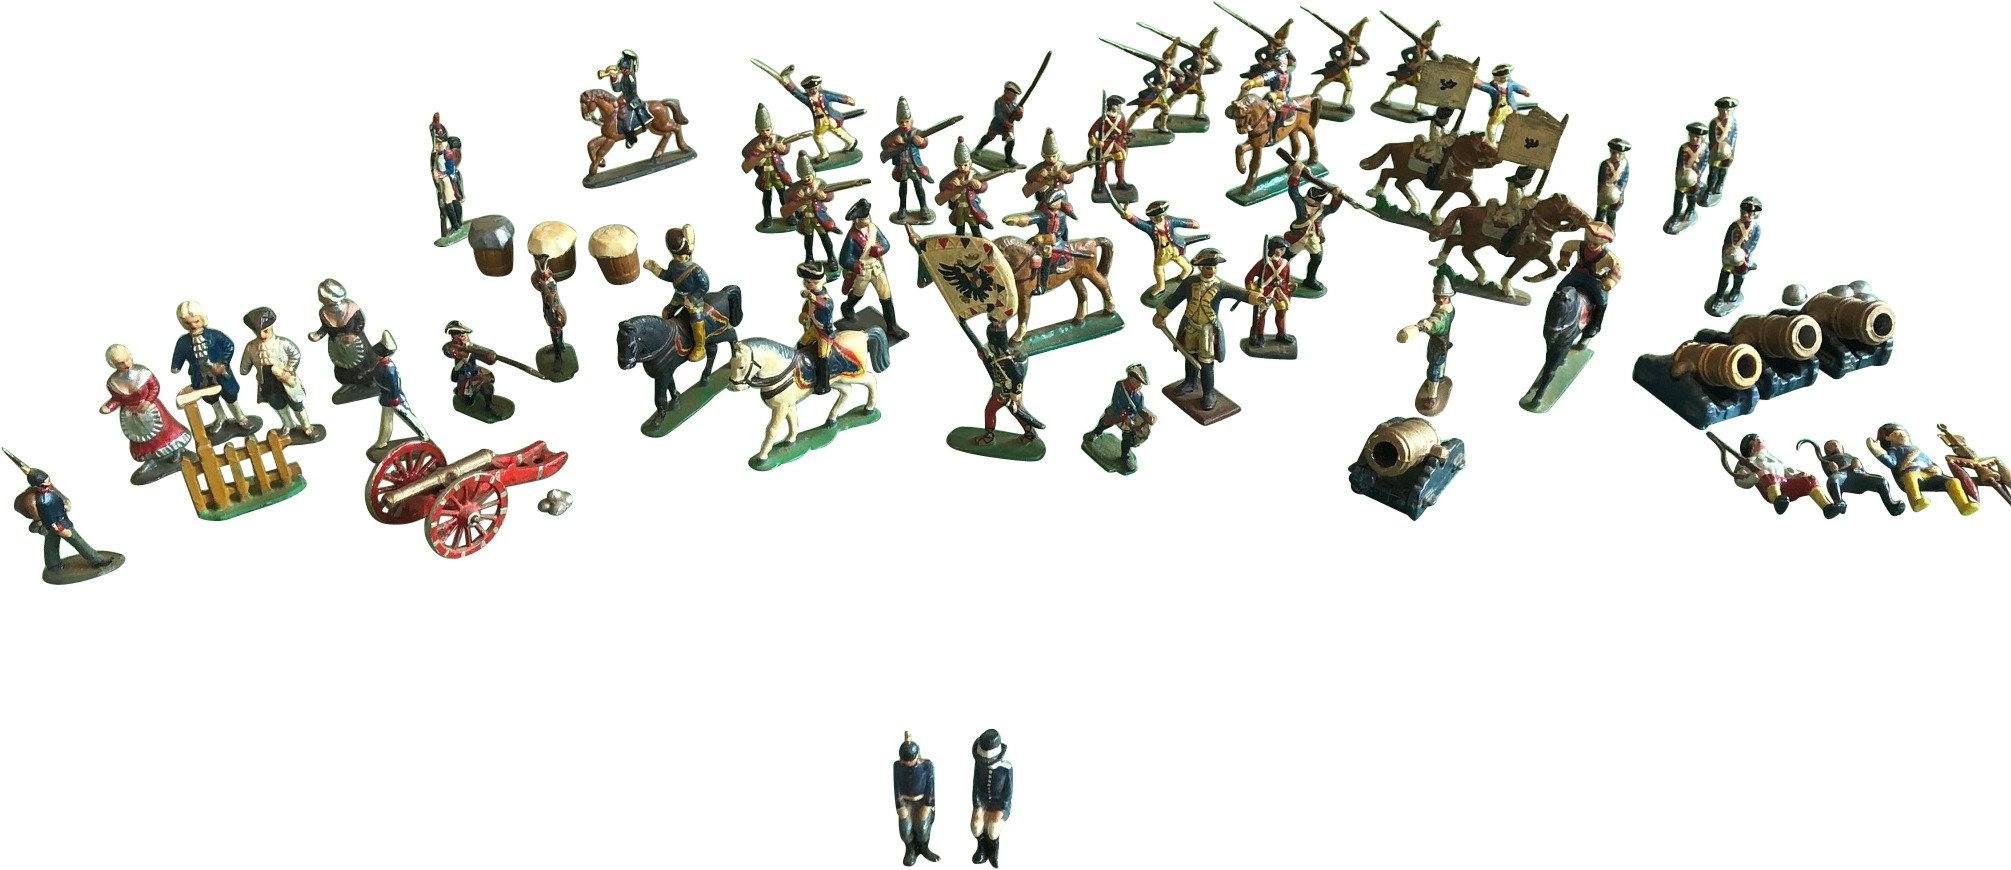 Set of Sixty-Nine Figures of Lead Soldiers, Germans, 1930s